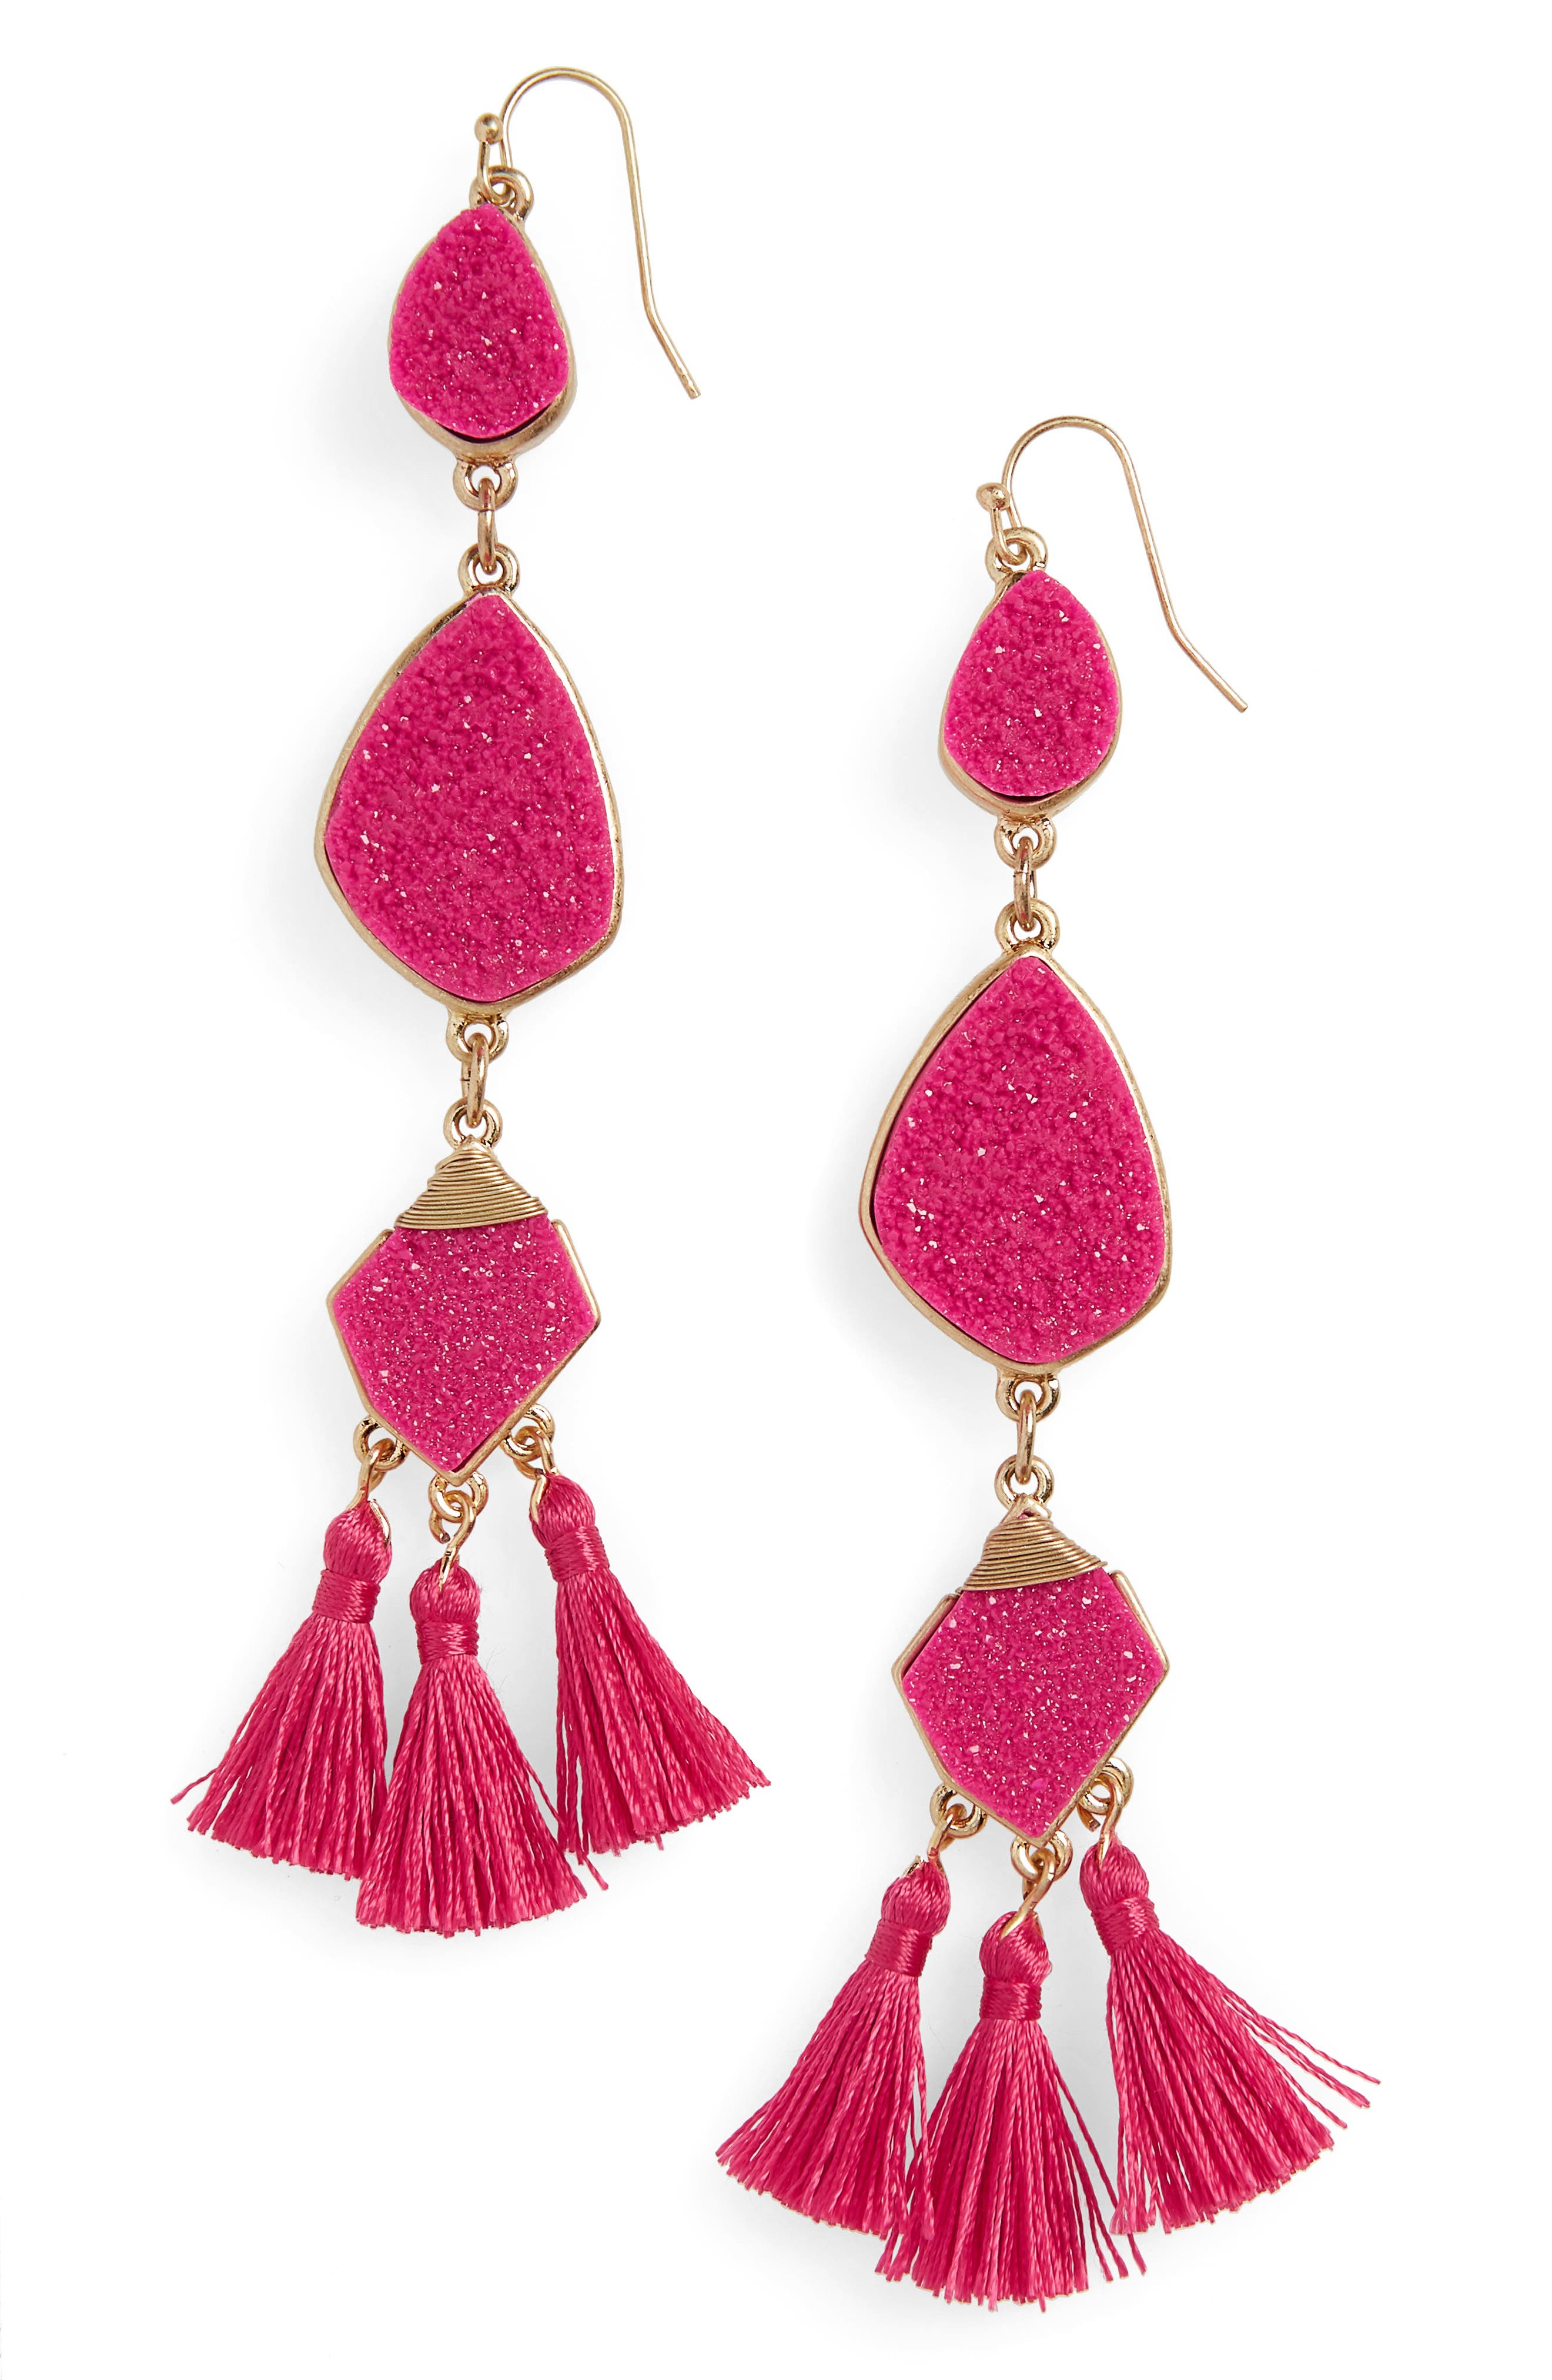 Drusy Tassel Earrings,                             Main thumbnail 1, color,                             Hot Pink